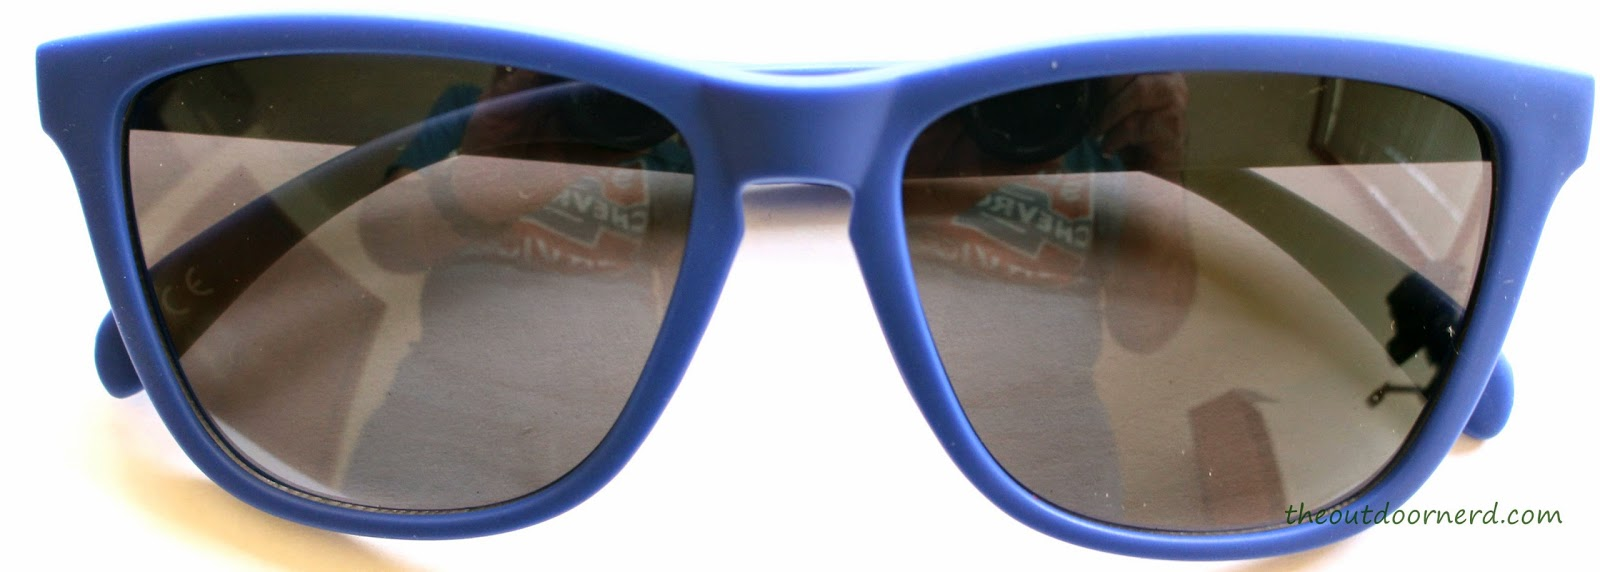 Nectar Cruze Sunglasses: Product View 3